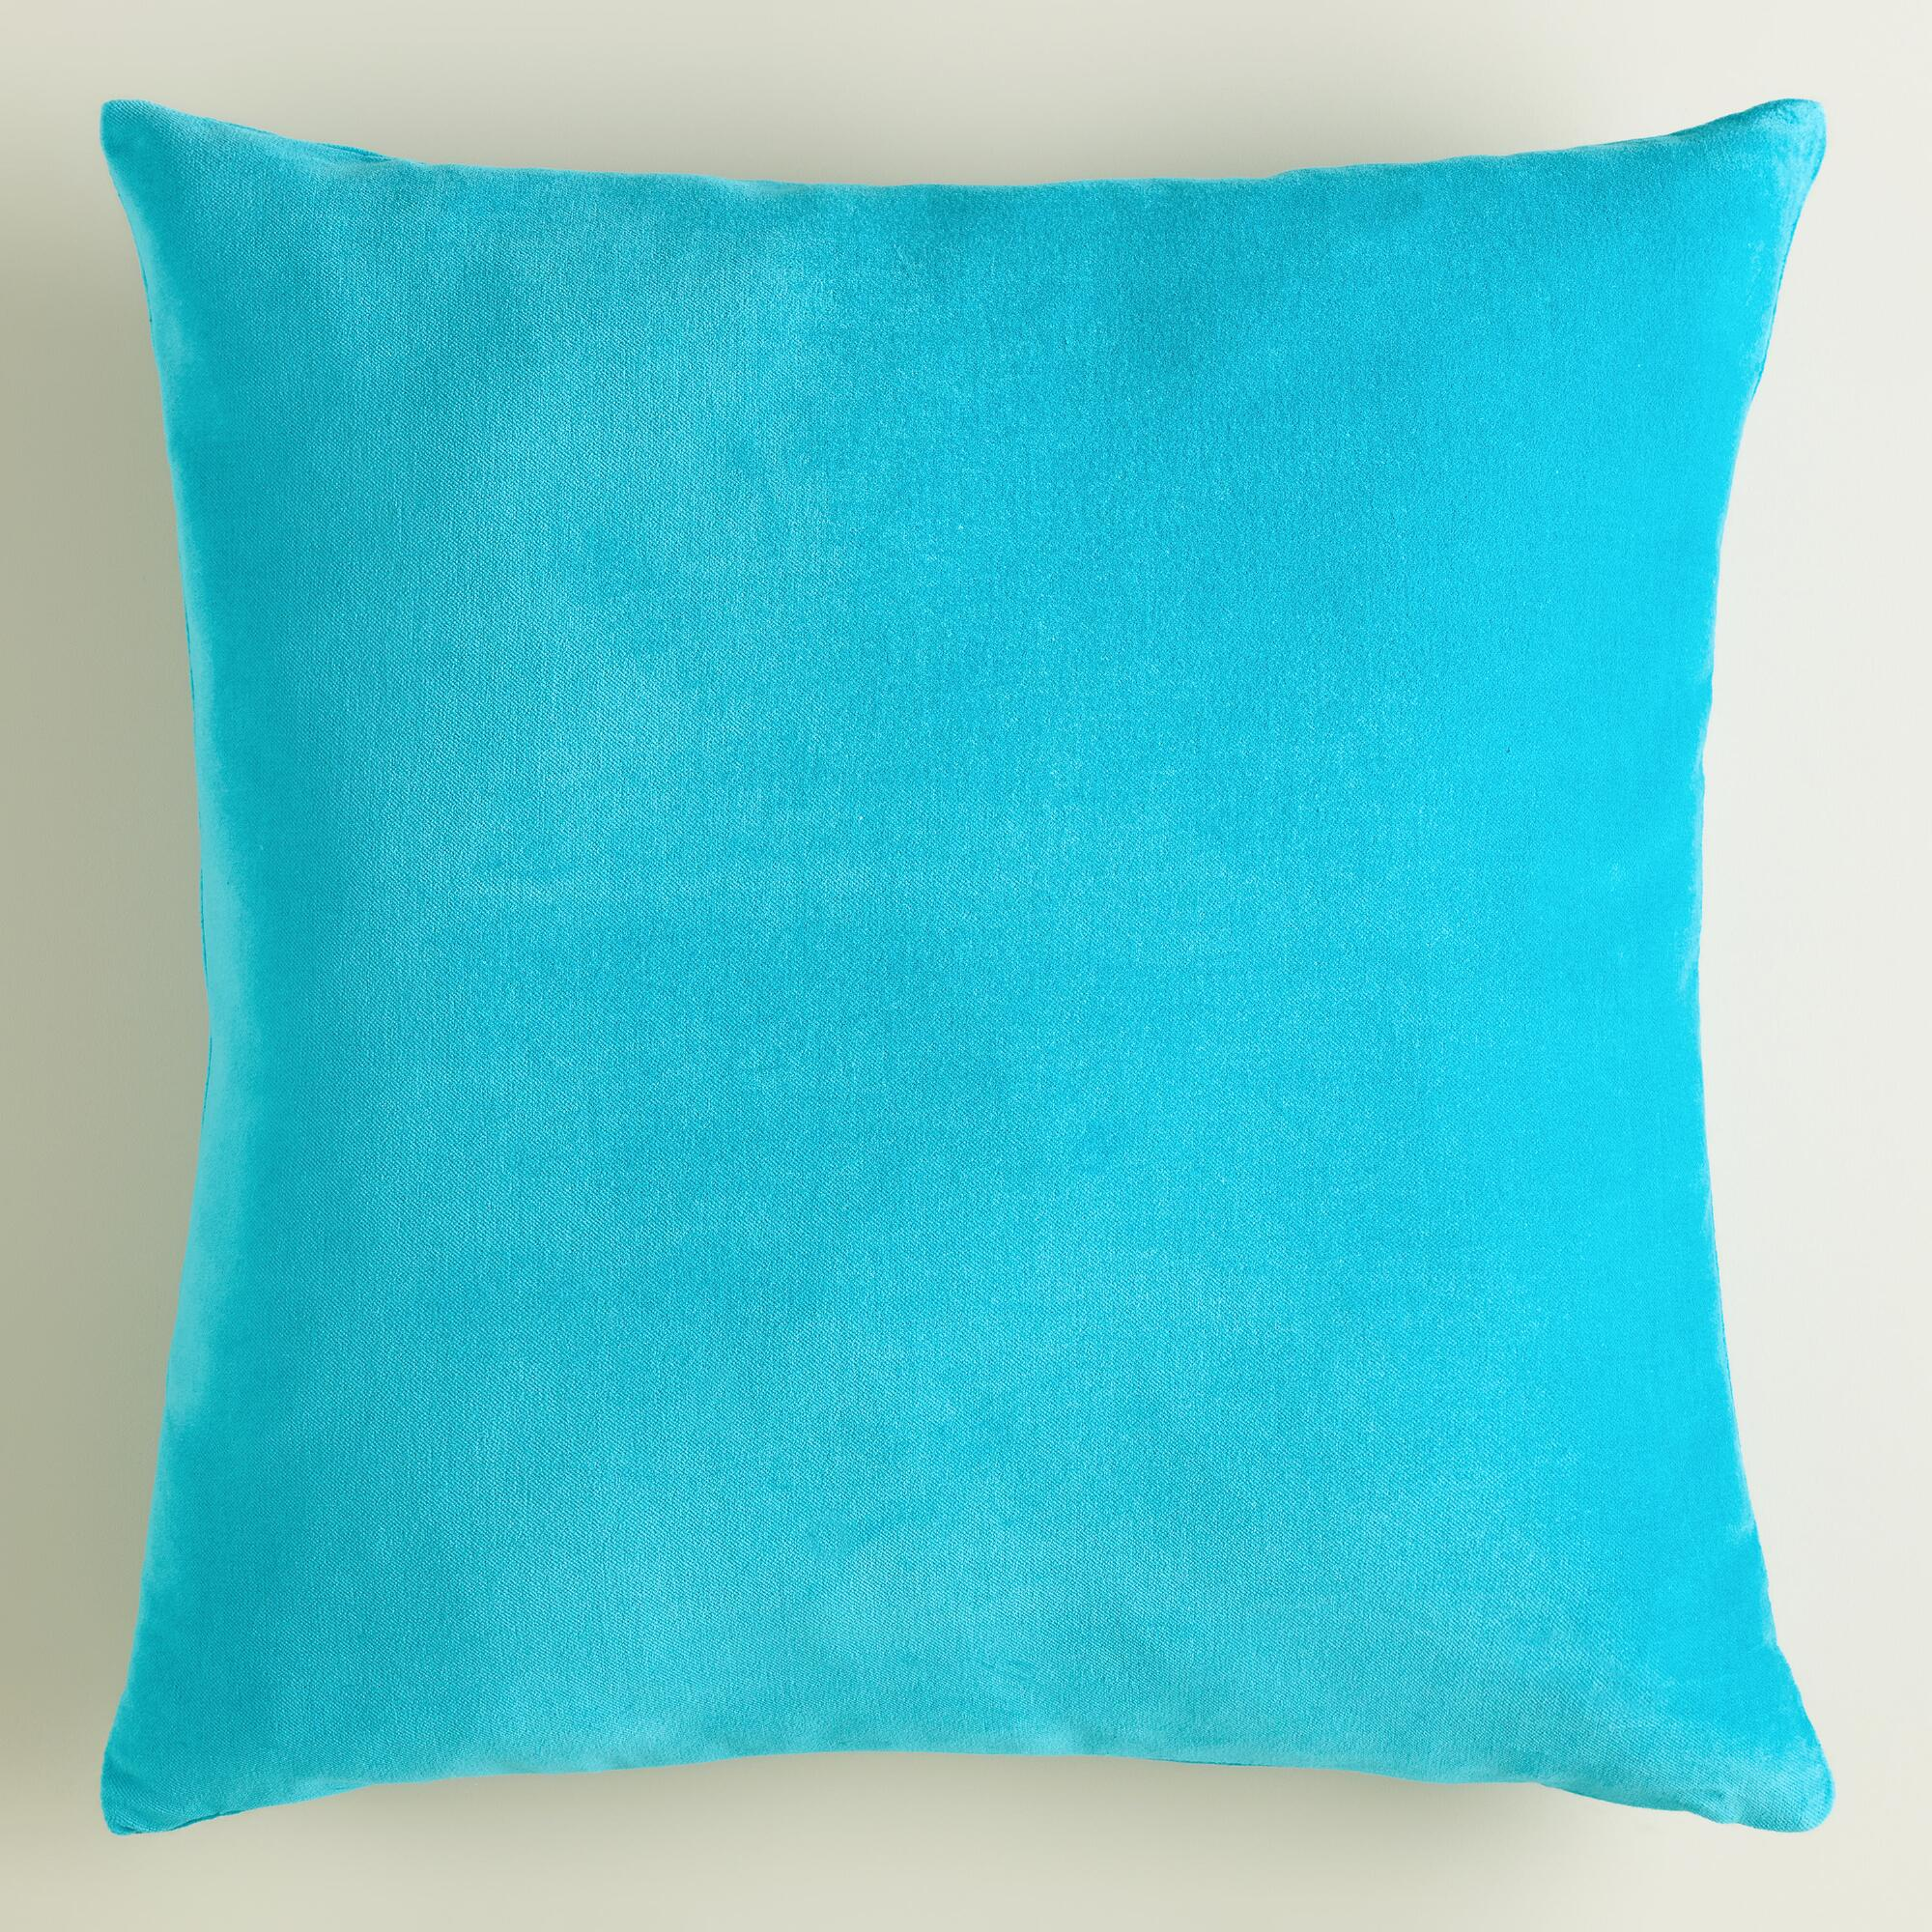 Peacock Blue Throw Pillow : Large Peacock Blue Velvet Throw Pillow World Market